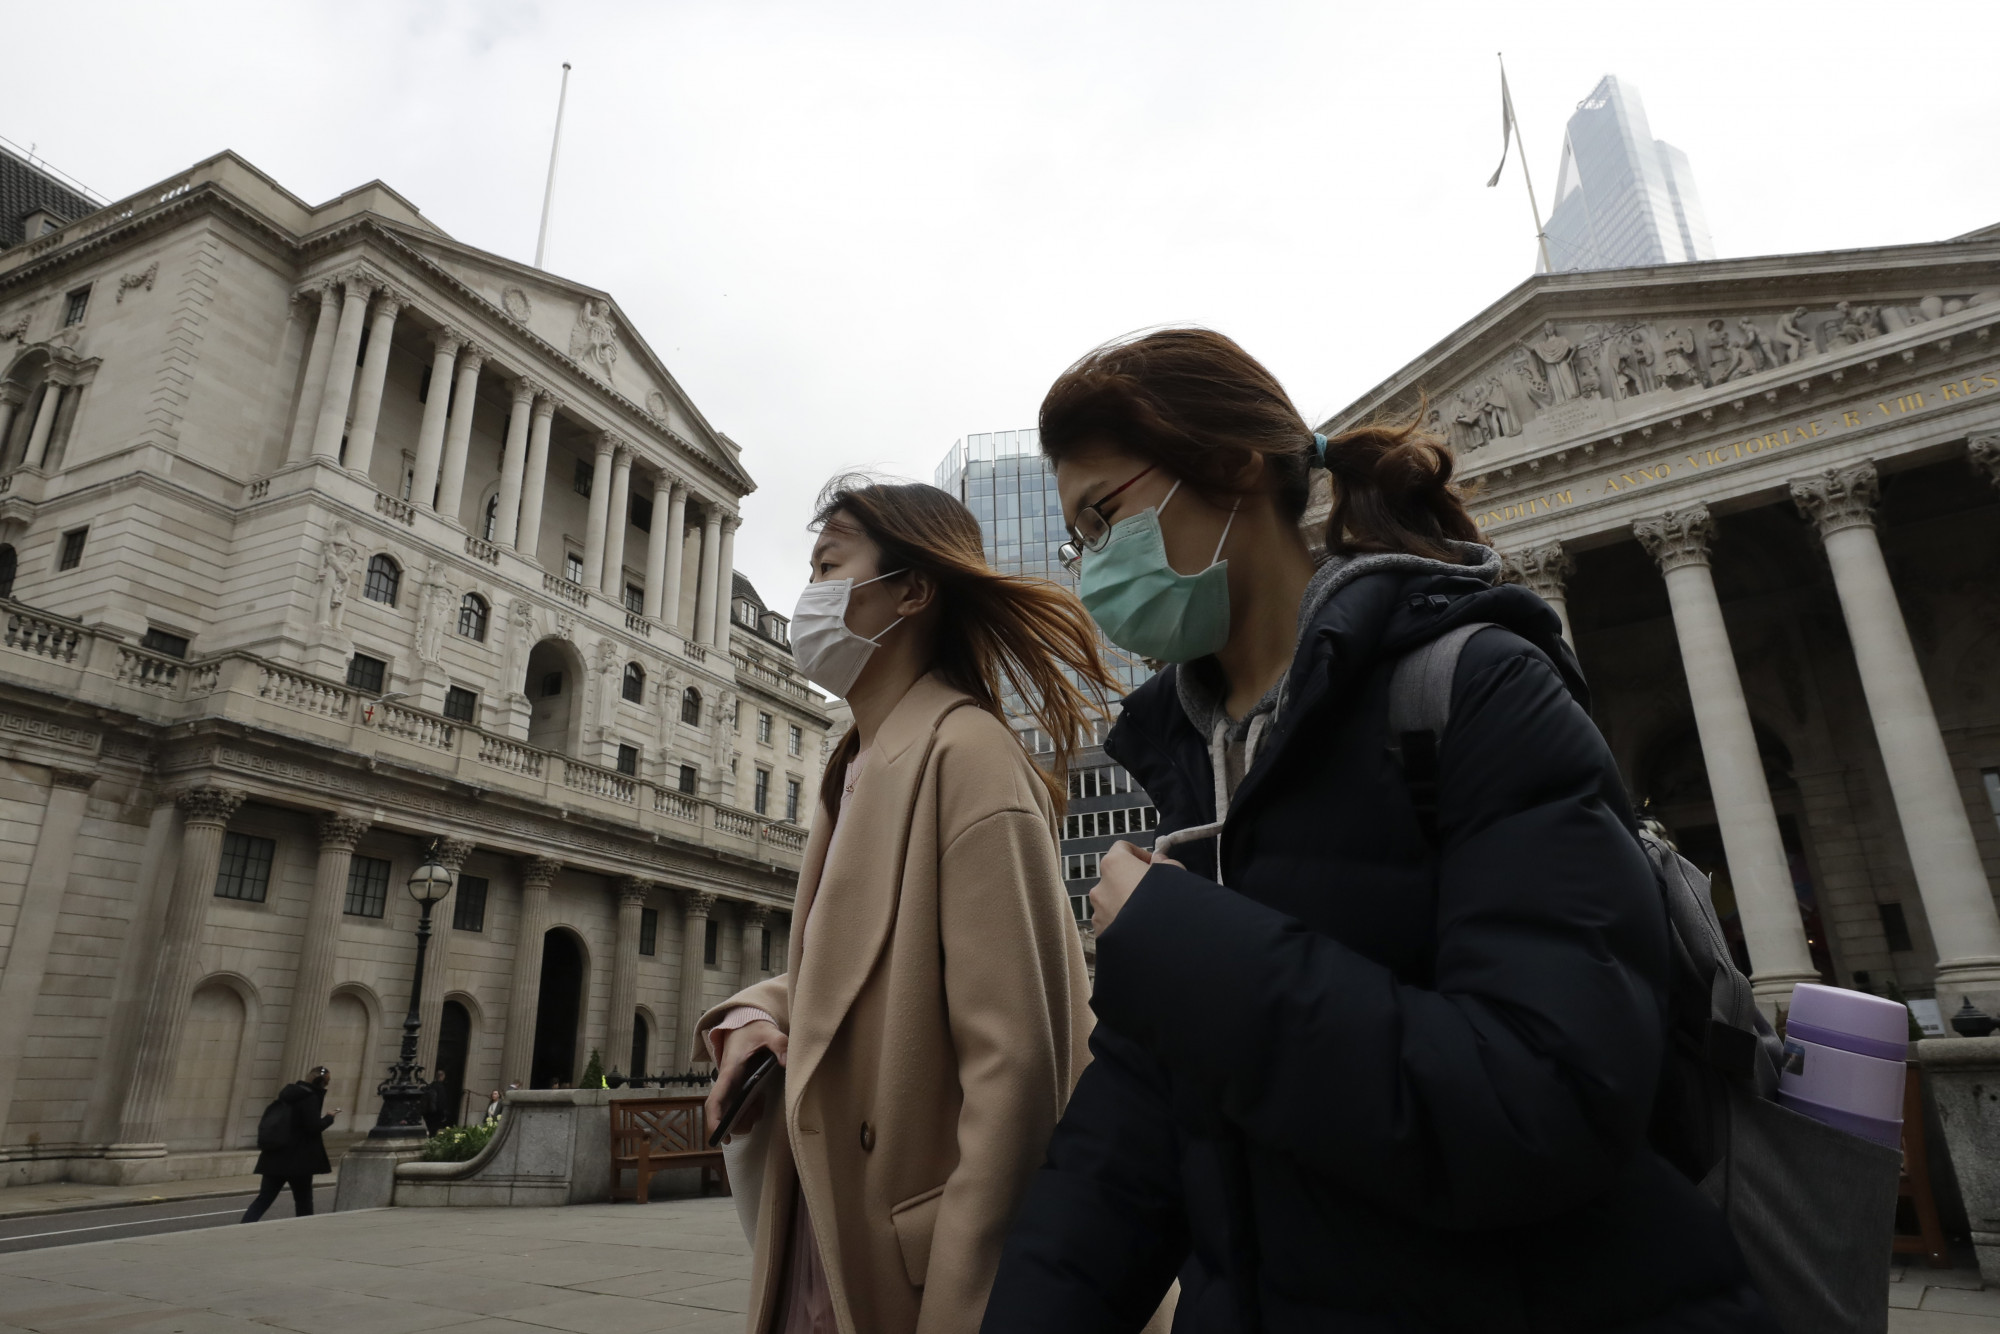 Bank of England Cuts Key Interest Rate in Response to Virus